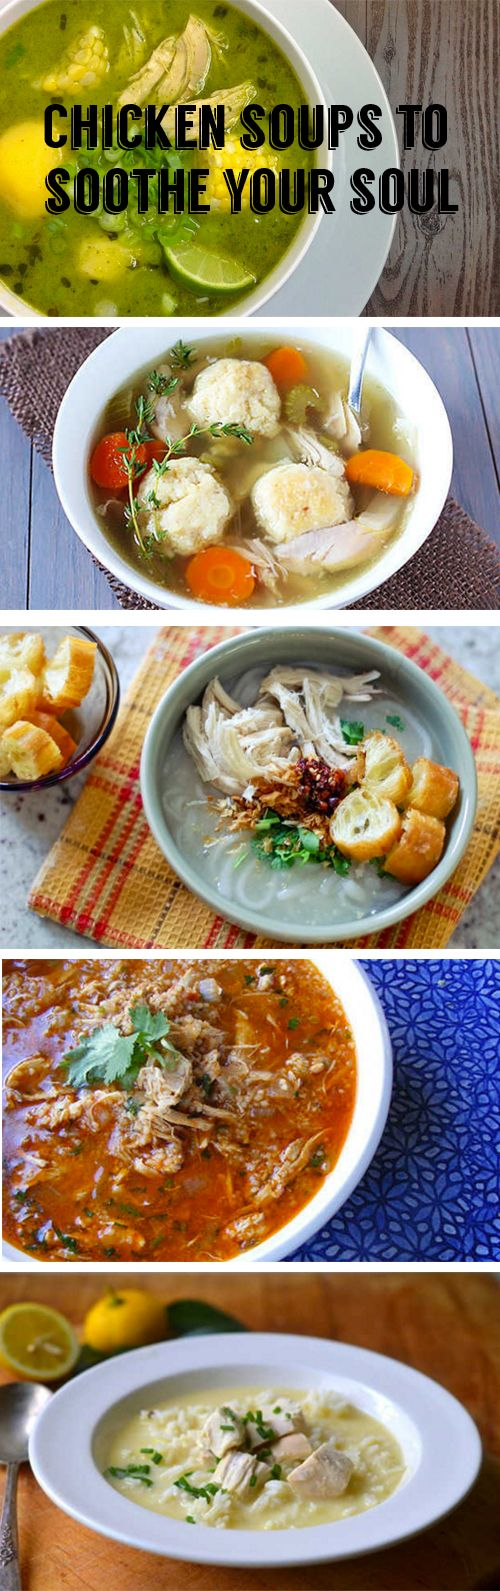 There's nothing quite like a soul-fixing bowl of soup on a winter's day